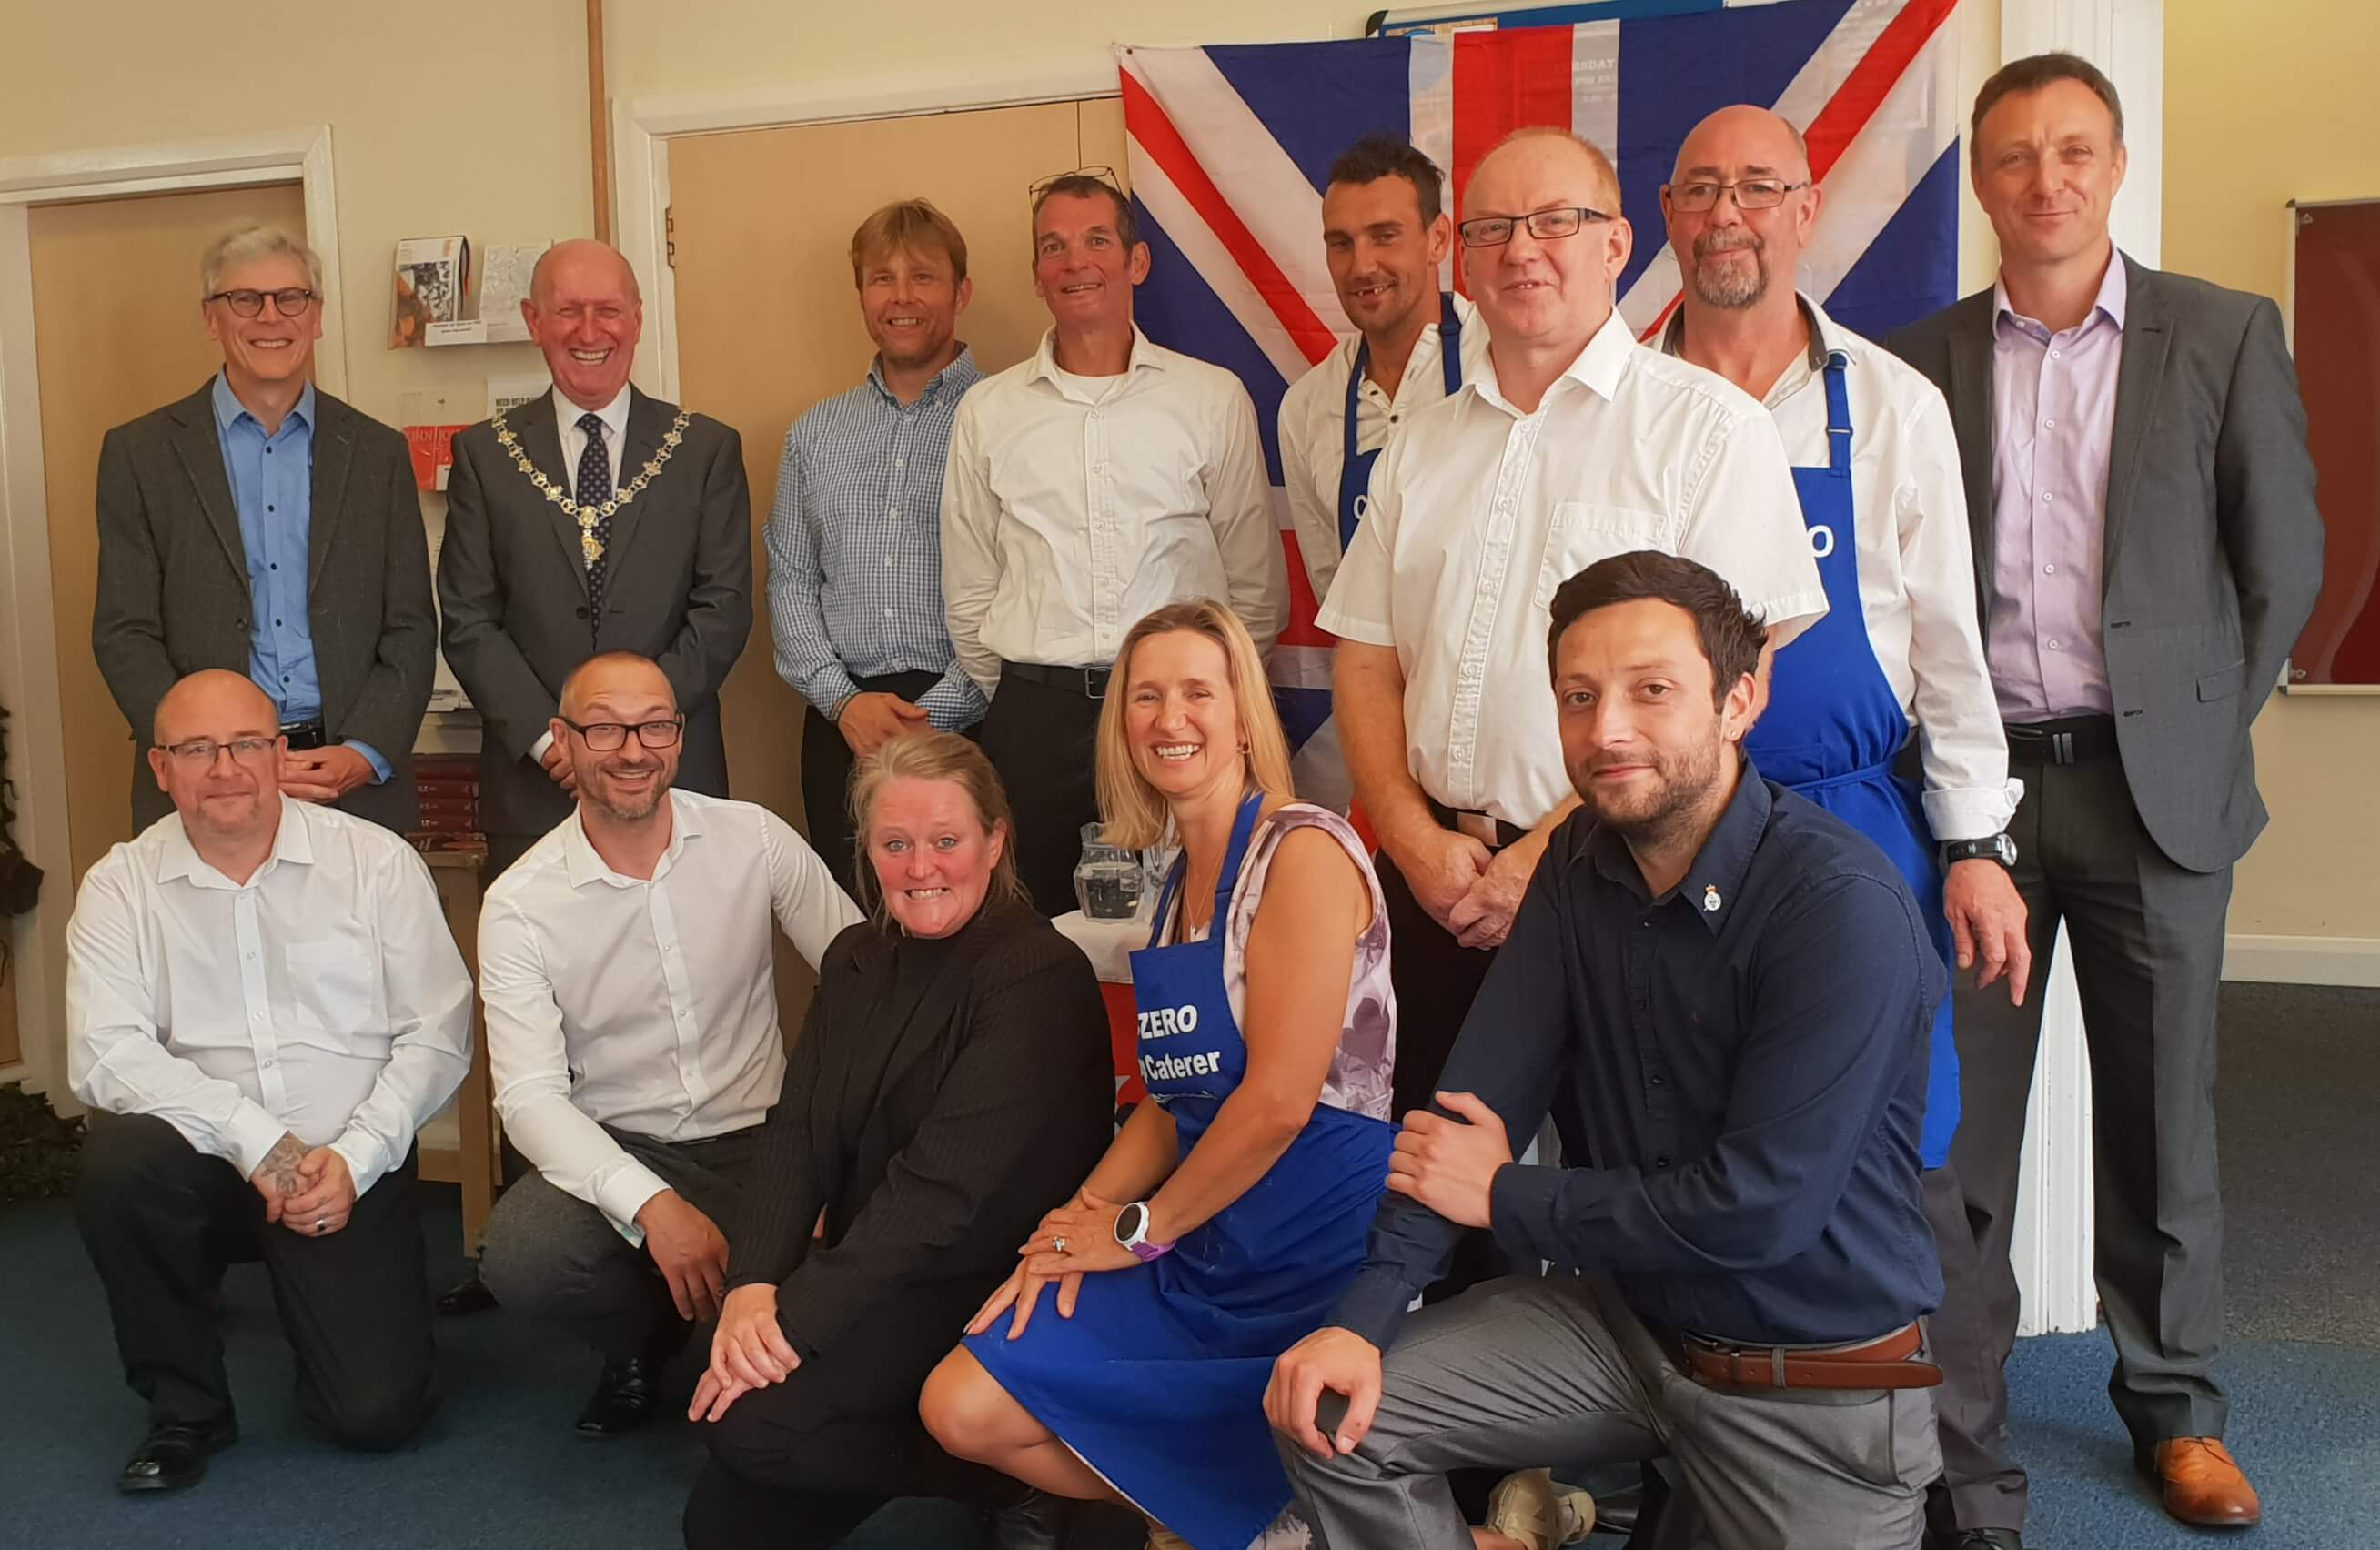 Lunch served up in Cleethorpes by our veterans